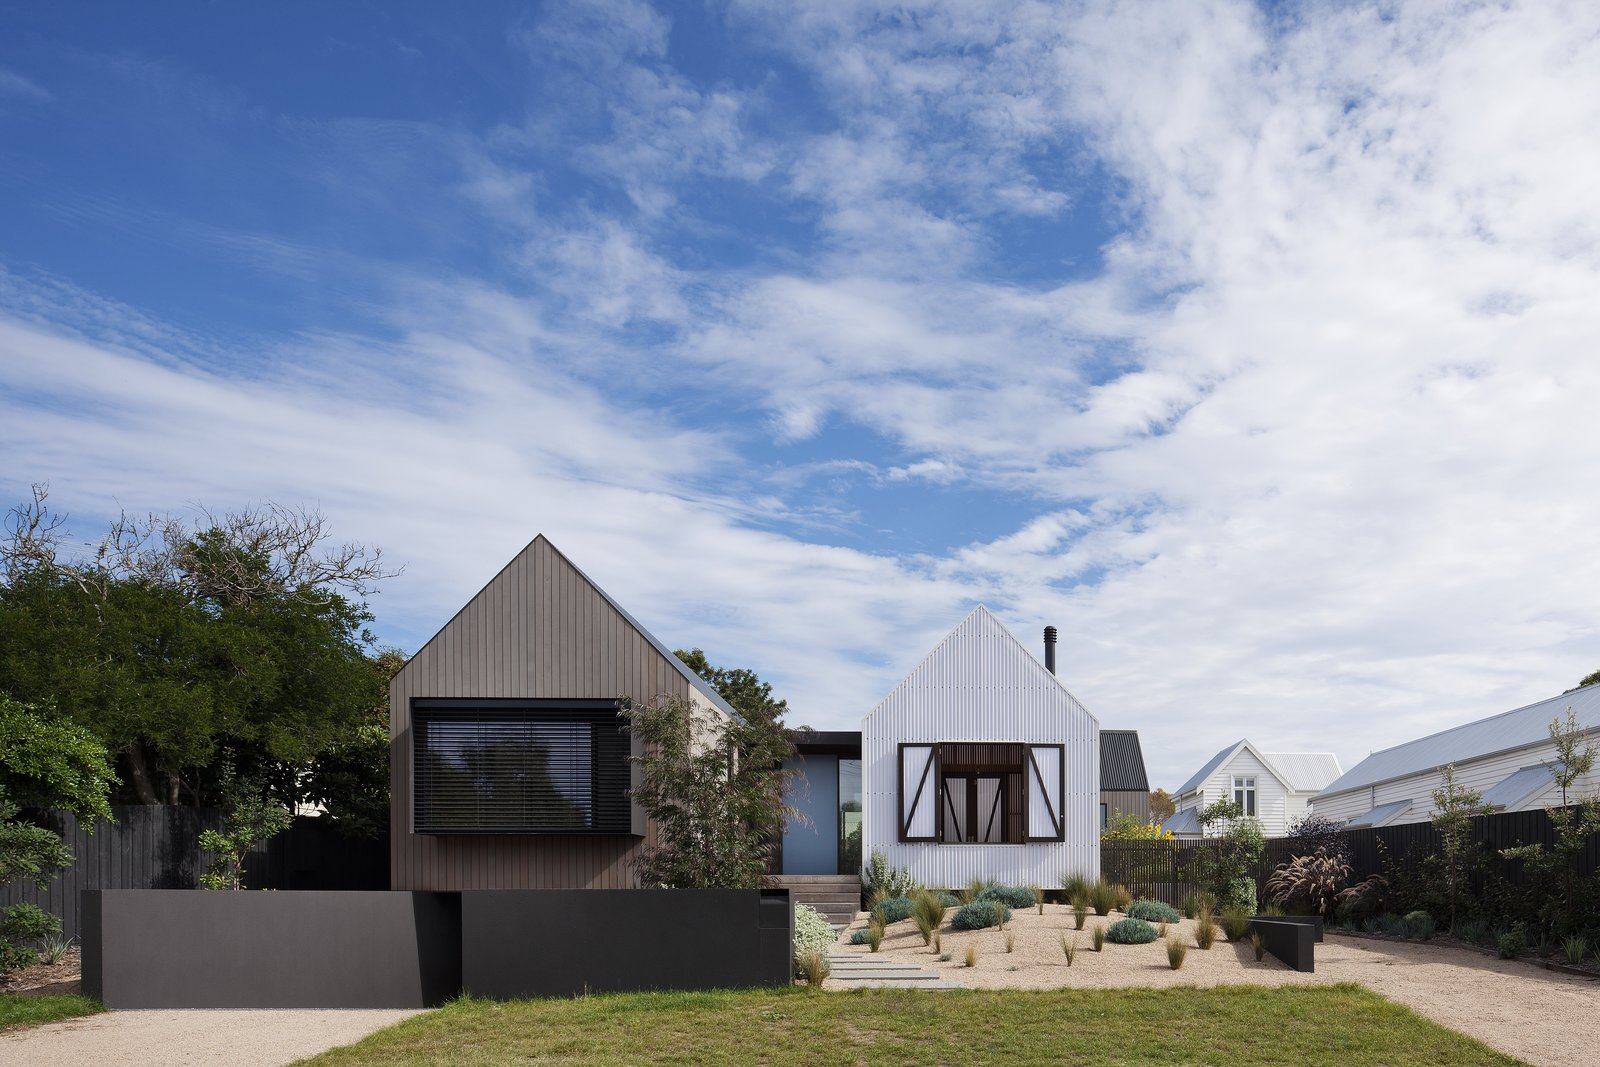 """Exterior, Metal Roof Material, Beach House Building Type, Gable RoofLine, Wood Siding Material, and House Building Type """"The gabled forms embrace the context of the surrounding post-war weatherboard houses, and the white polycarbonate directly references the white weatherboards of the dwelling to the north,"""" say the architects.  Photo 2 of 9 in Three Connected Pavilions Form This Airy Australian Beach Retreat"""